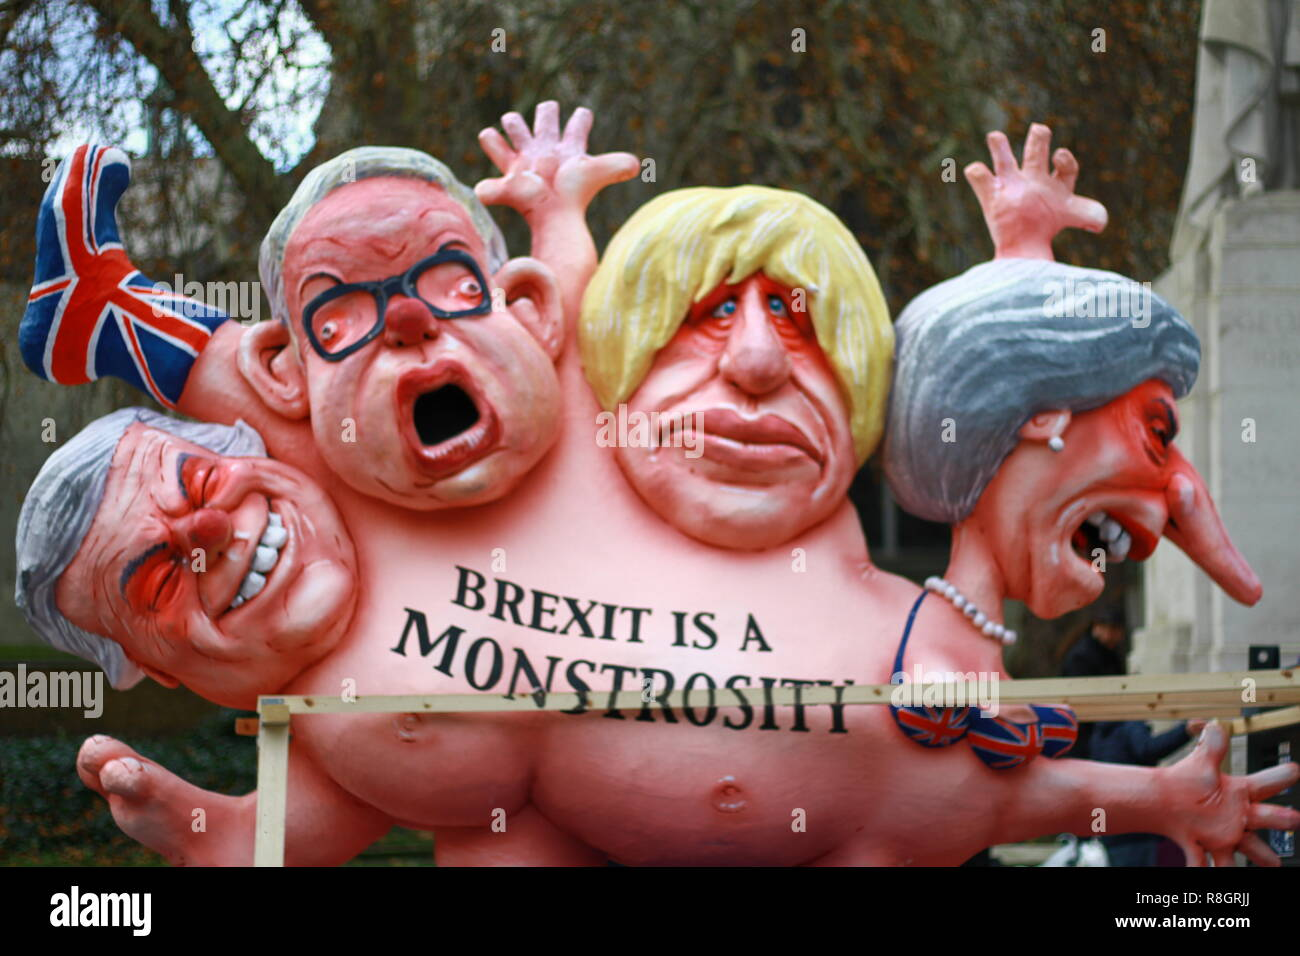 Models of politicians displayed at cancel Brexit protest. Stop Brexit creativity. Pro Eu. European Union. Remain. British politics. UK politics. Stock Photo